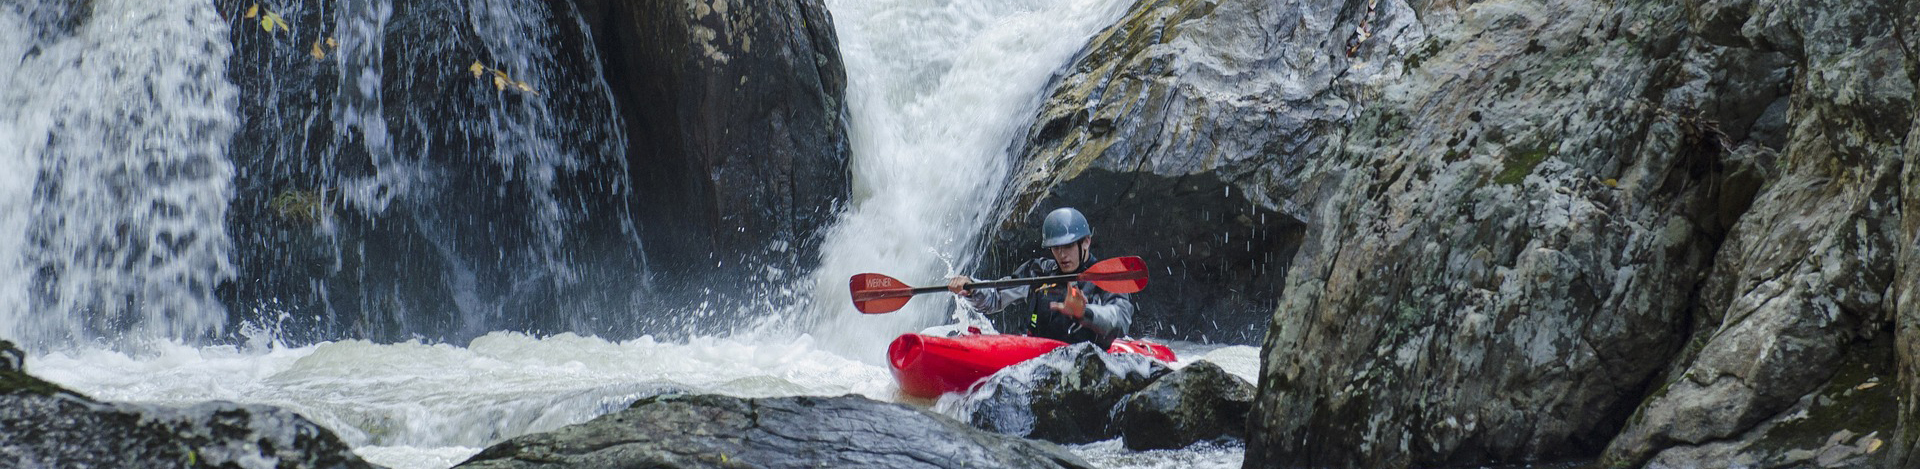 Classification of Rapids, Water Levels, and Canoeists